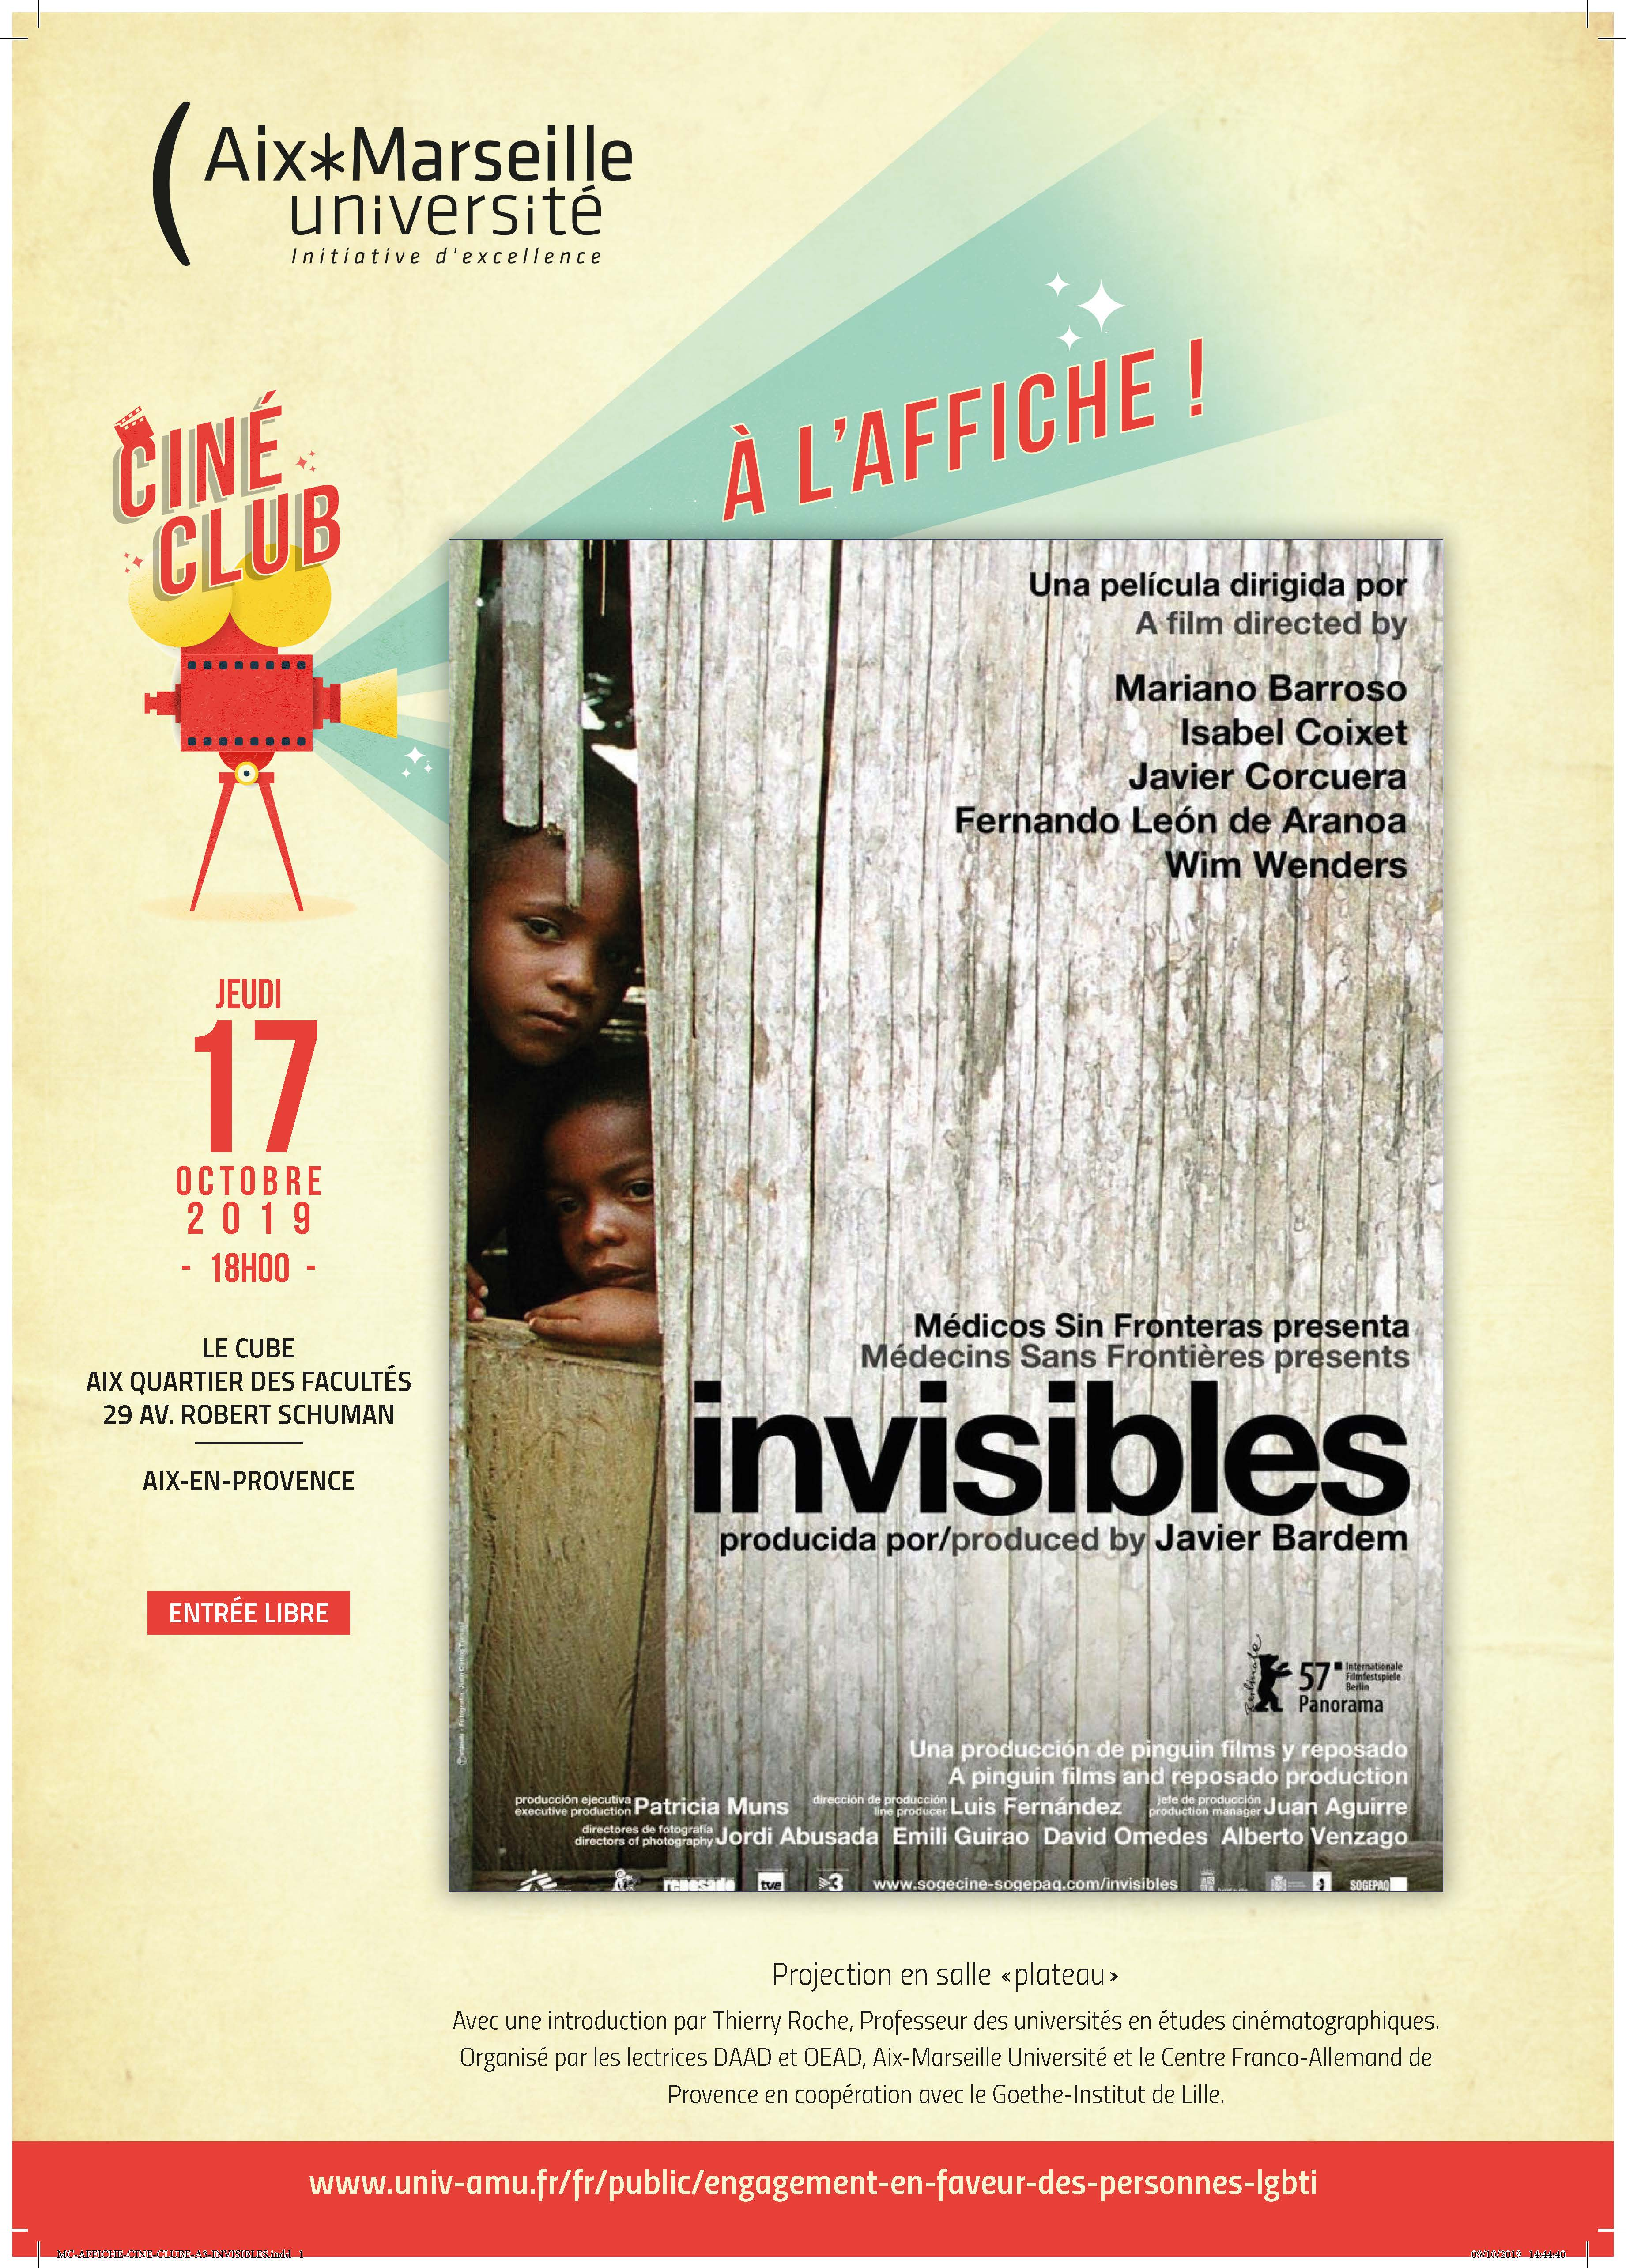 Projection Invisibles